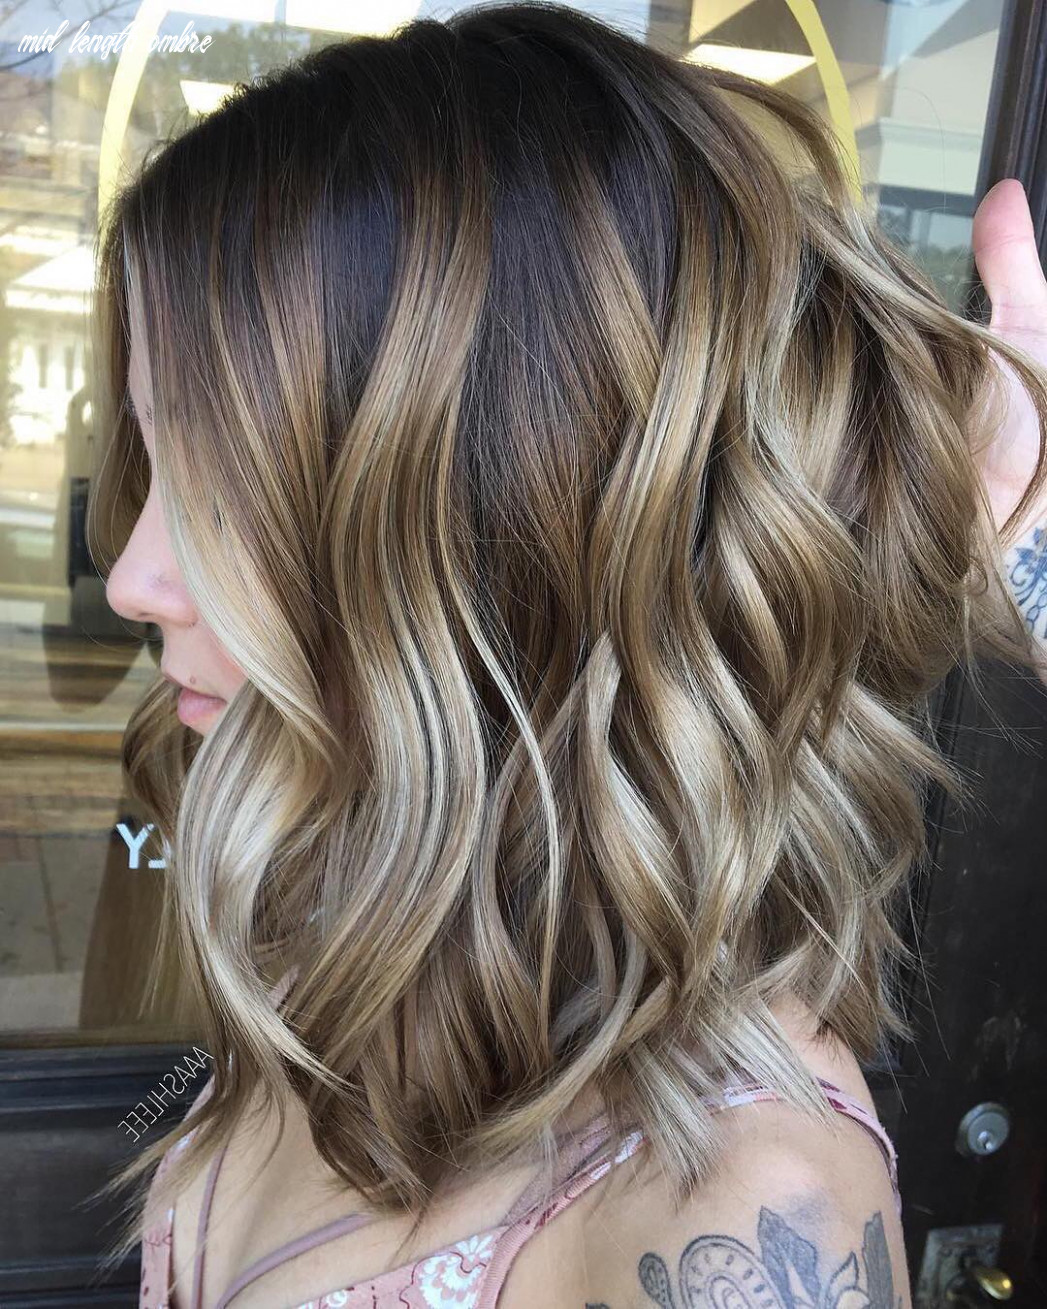 11 ombre balayage hairstyles for medium length hair, hair color 11 mid length ombre